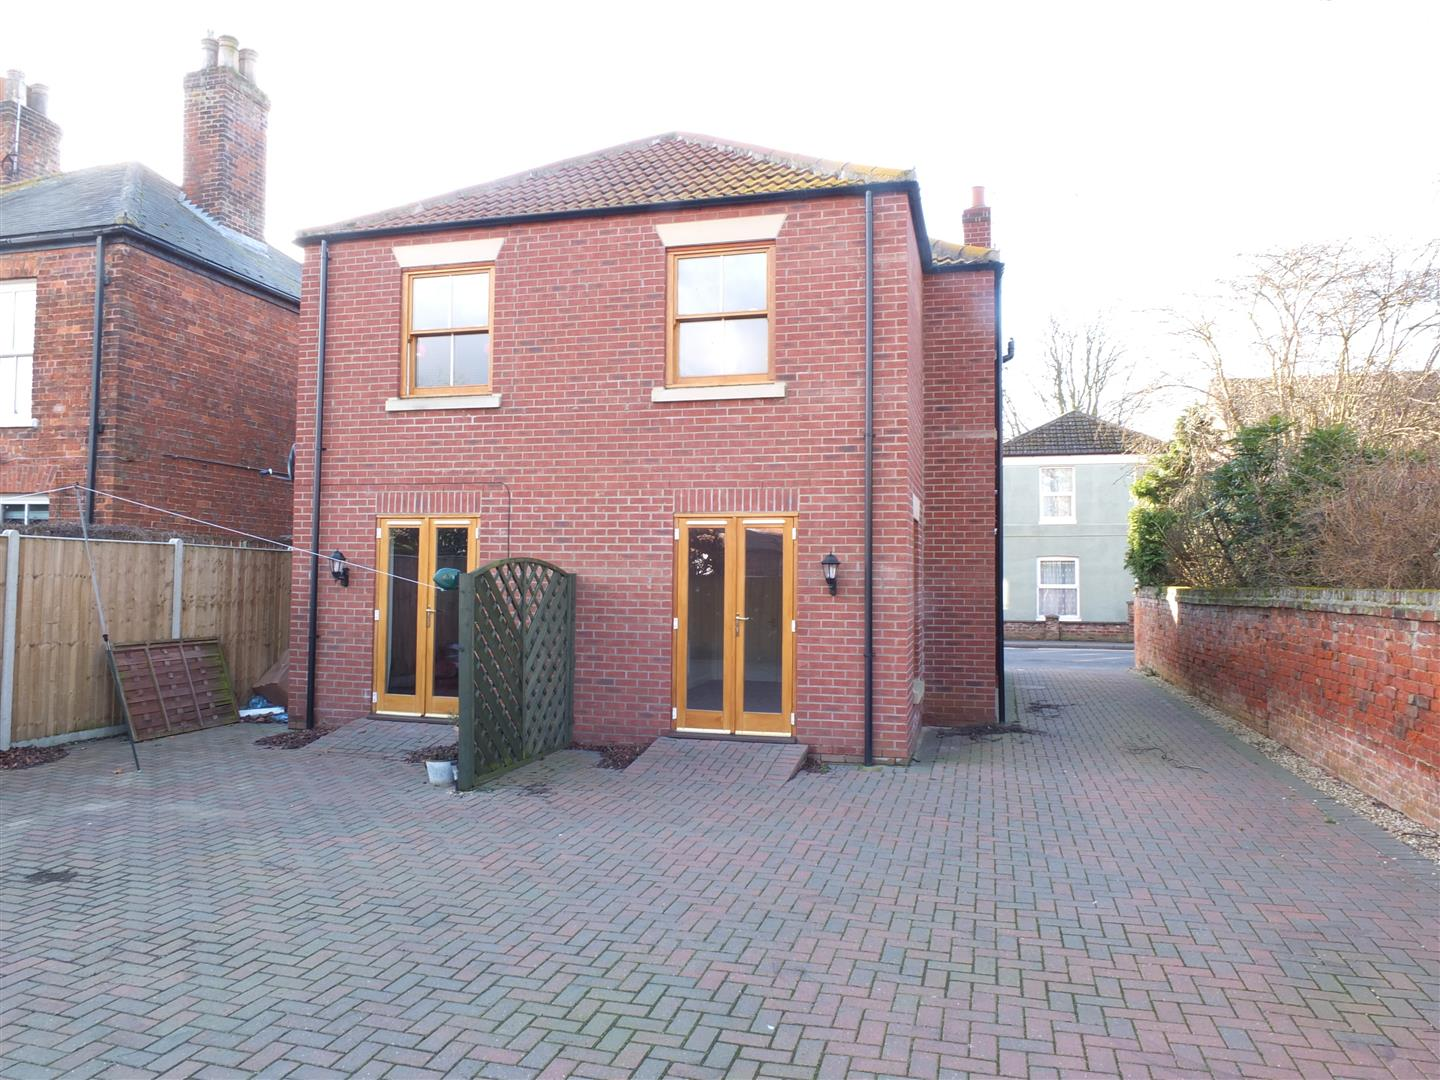 3 bed semi-detached house to rent in Holbeach Spalding, PE12 7DR 8